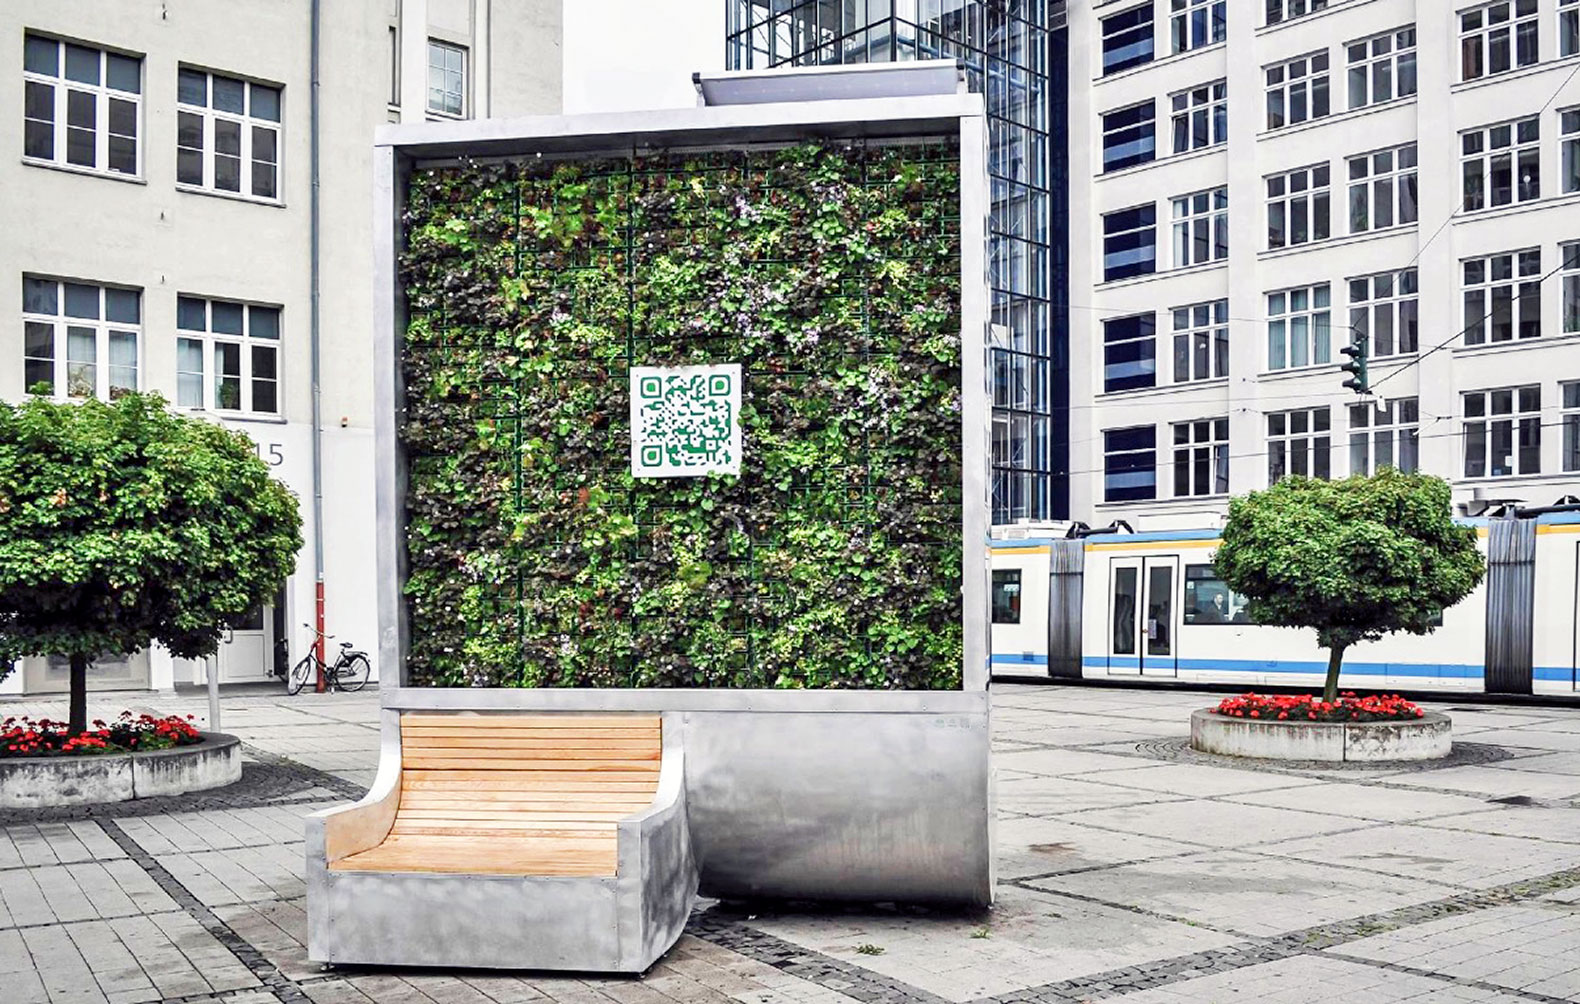 This urban 'tree' cleans as much polluted air as an entire forest